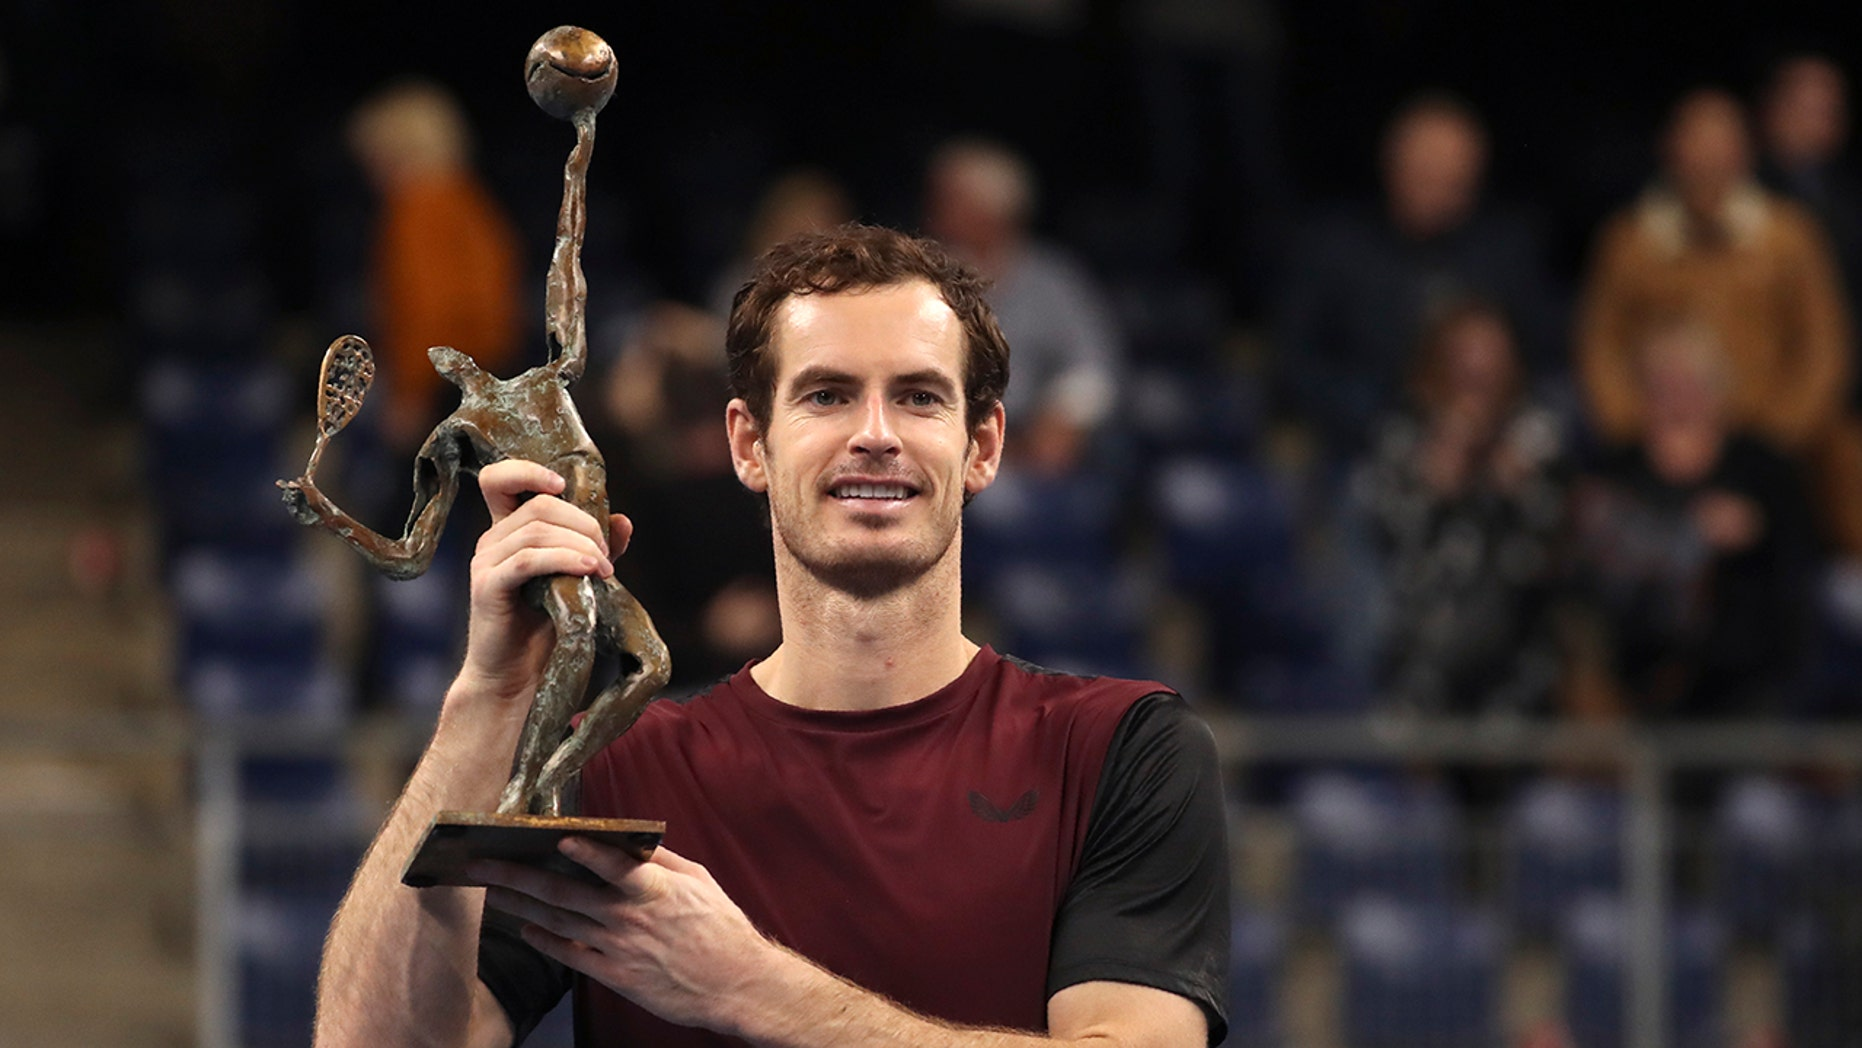 Westlake Legal Group TEN-Andy-Murray5 Andy Murray wins 1st ATP final since hip surgery fox-news/sports/tennis fnc/sports fnc e9b4a604-a7bb-55ae-8ac9-86f4e155dd7d Associated Press article